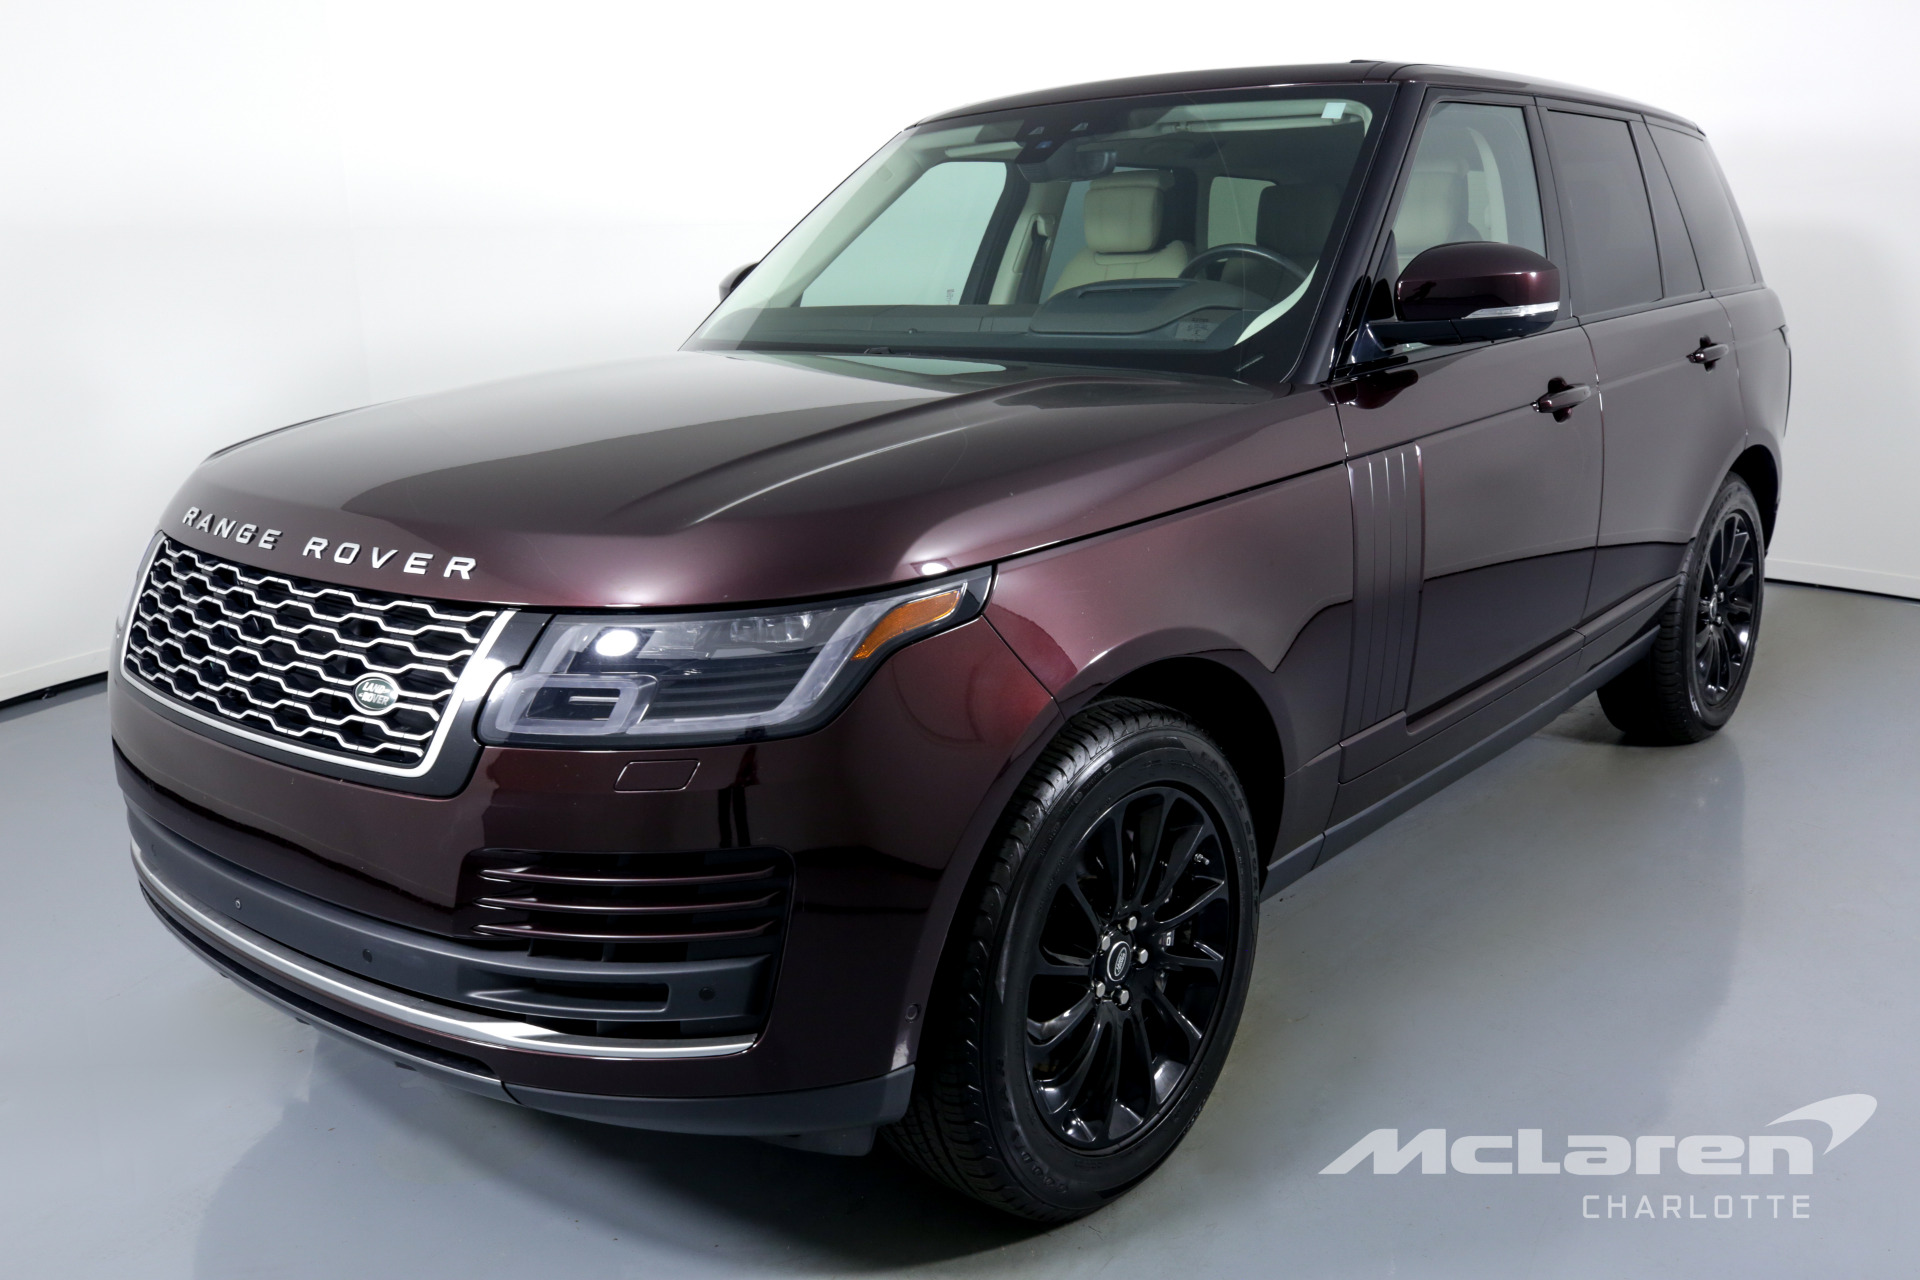 Used 2018 Land Rover Range Rover Supercharged   Charlotte, NC